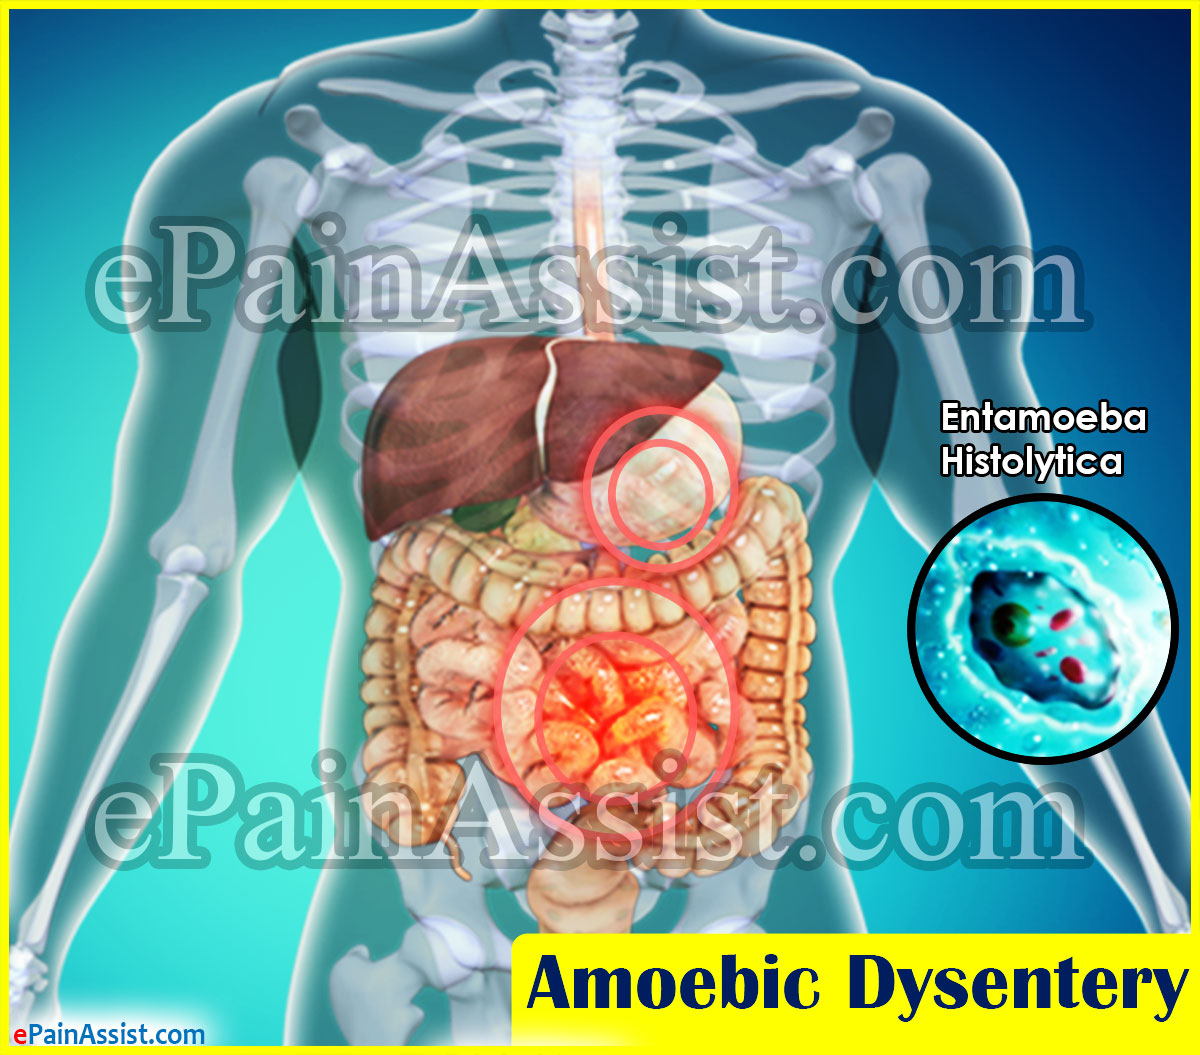 the causes and symptoms of amebic dysentry The possible causes of dysentery include a parasitic amoeba called entamoeba histolytica or a number of bacteria, including shigella and salmonella an infection of e histolytica is called amebiasis, and any resultant bloody diarrhea is called amebic dysentery.